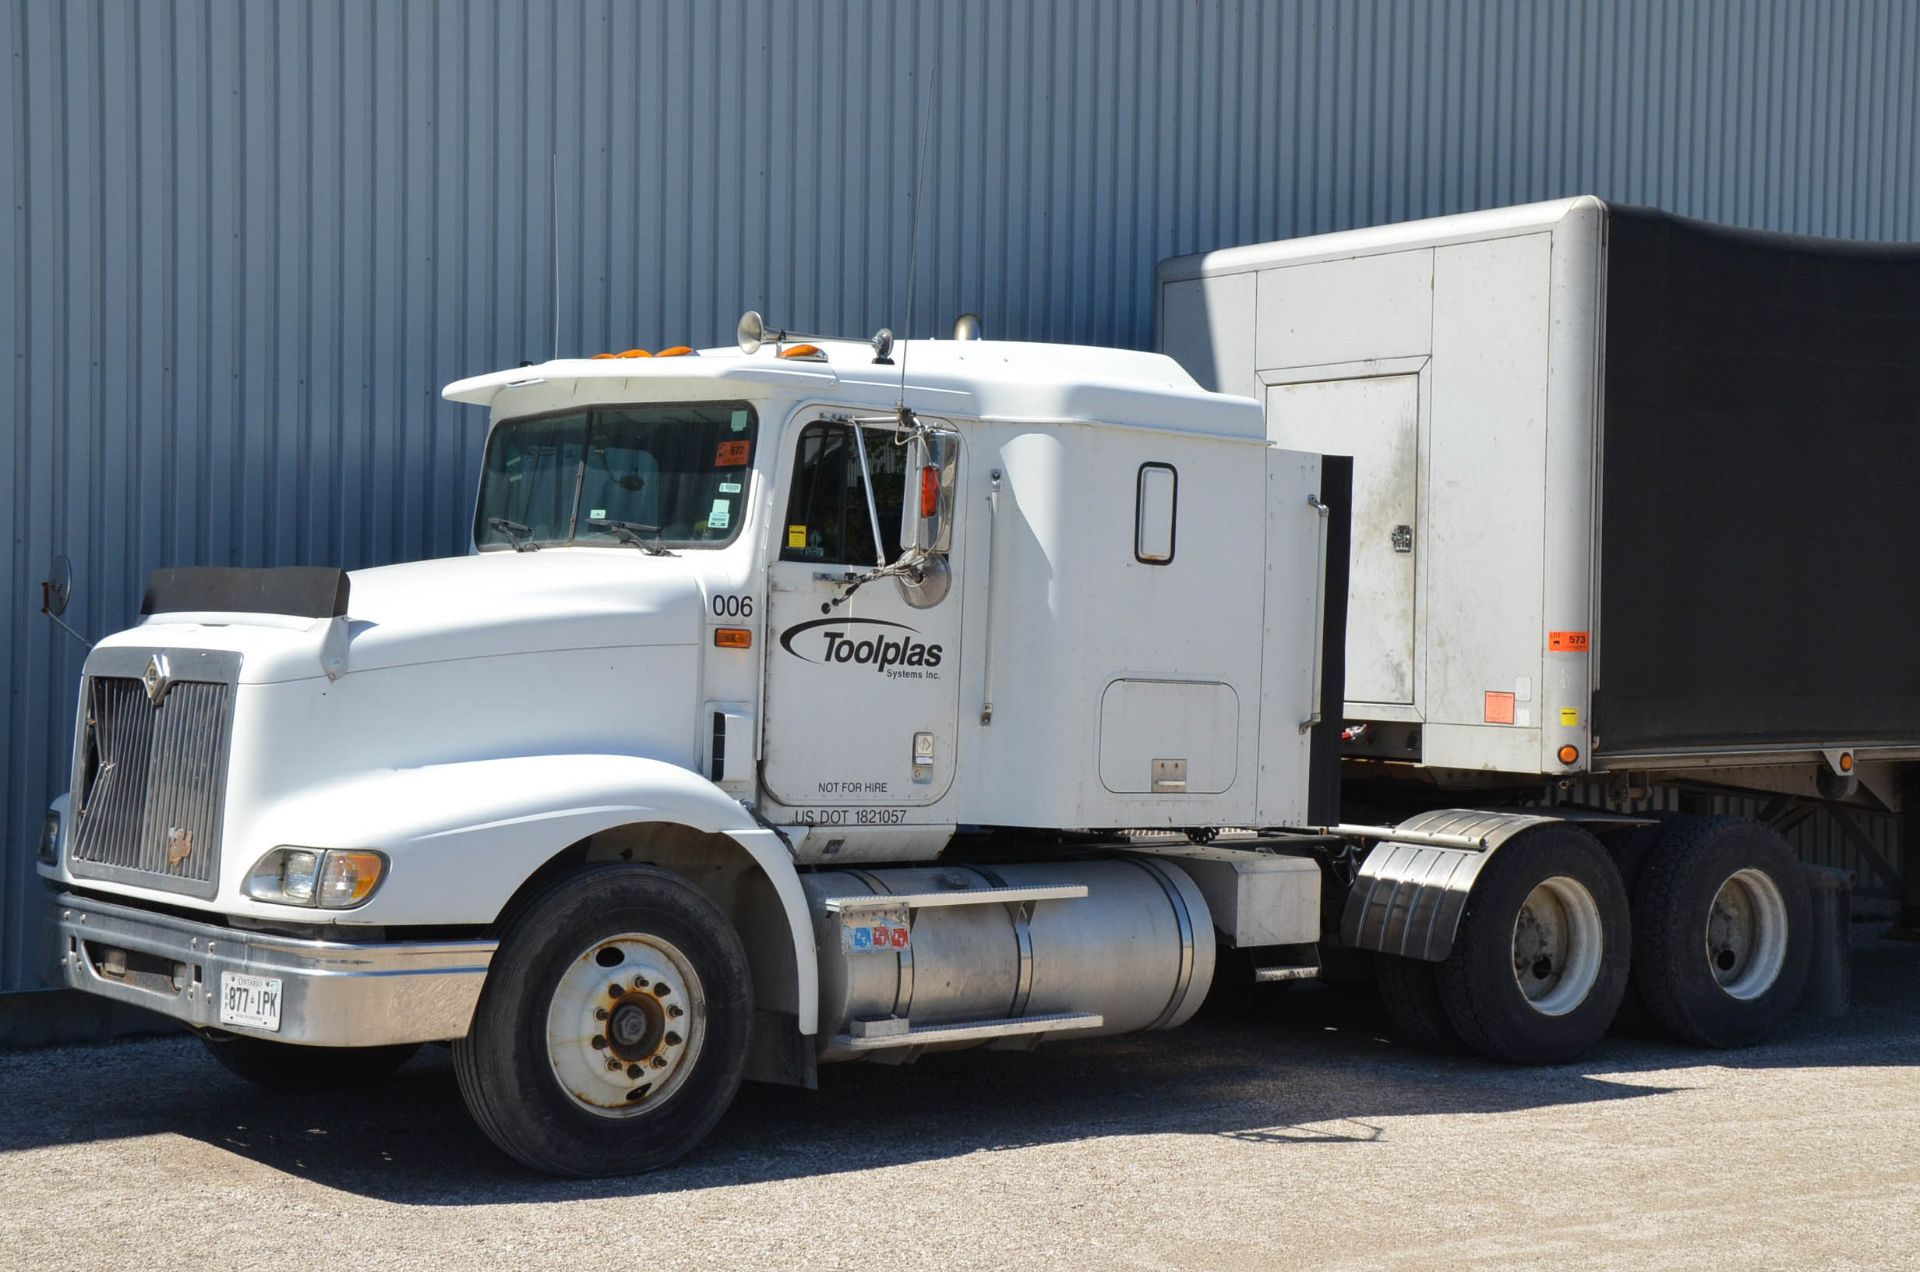 INTERNATIONAL 9200 6X4 TANDEM AXLE SEMI-TRACTOR TRUCK WITH . ENGINE, EATON-FULLER 13 SPEED MANUAL